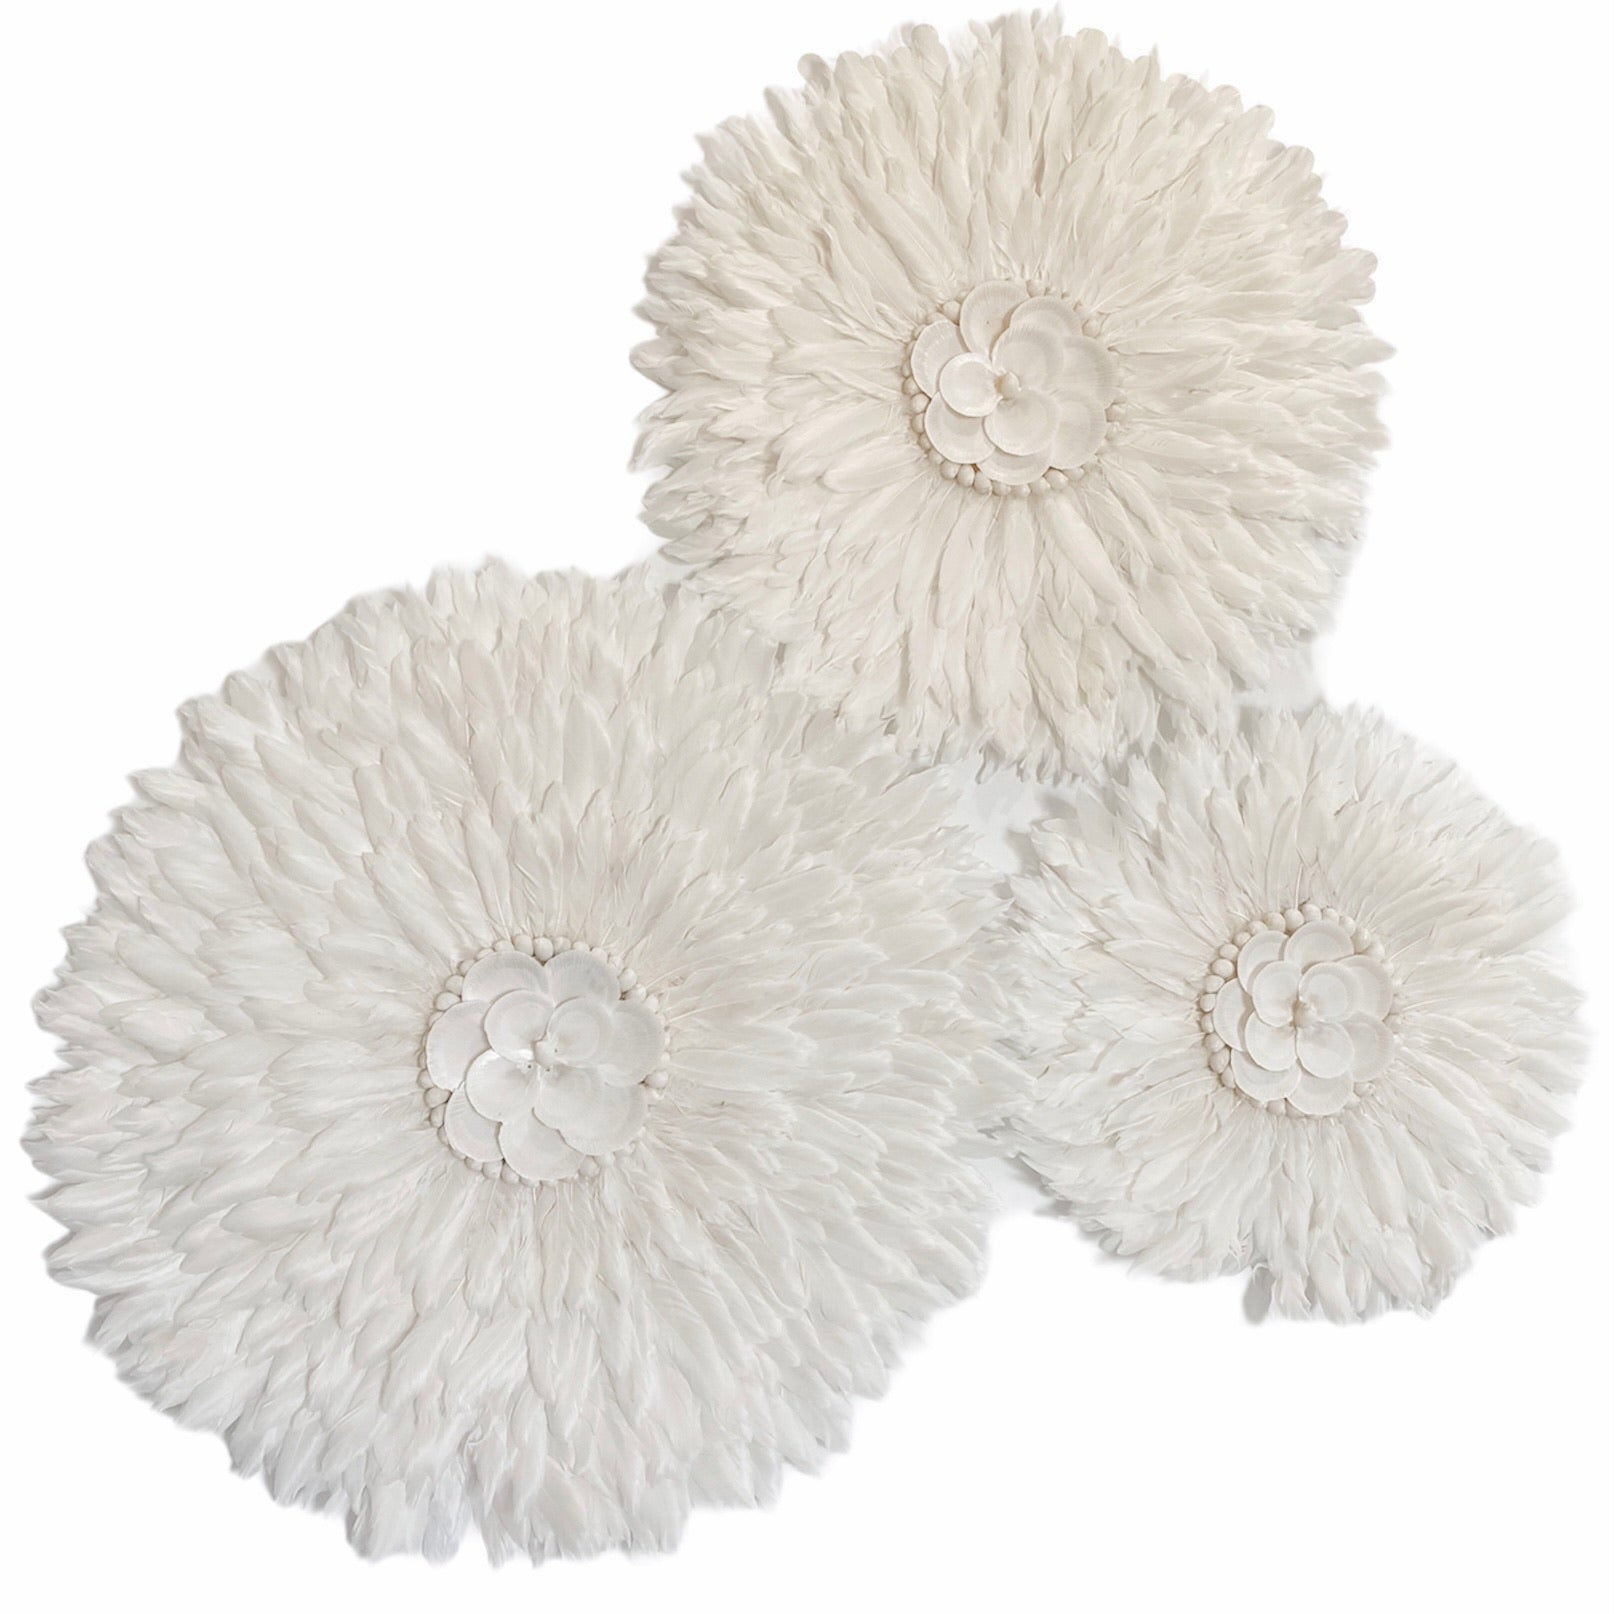 White Flower Jujus Set of 3